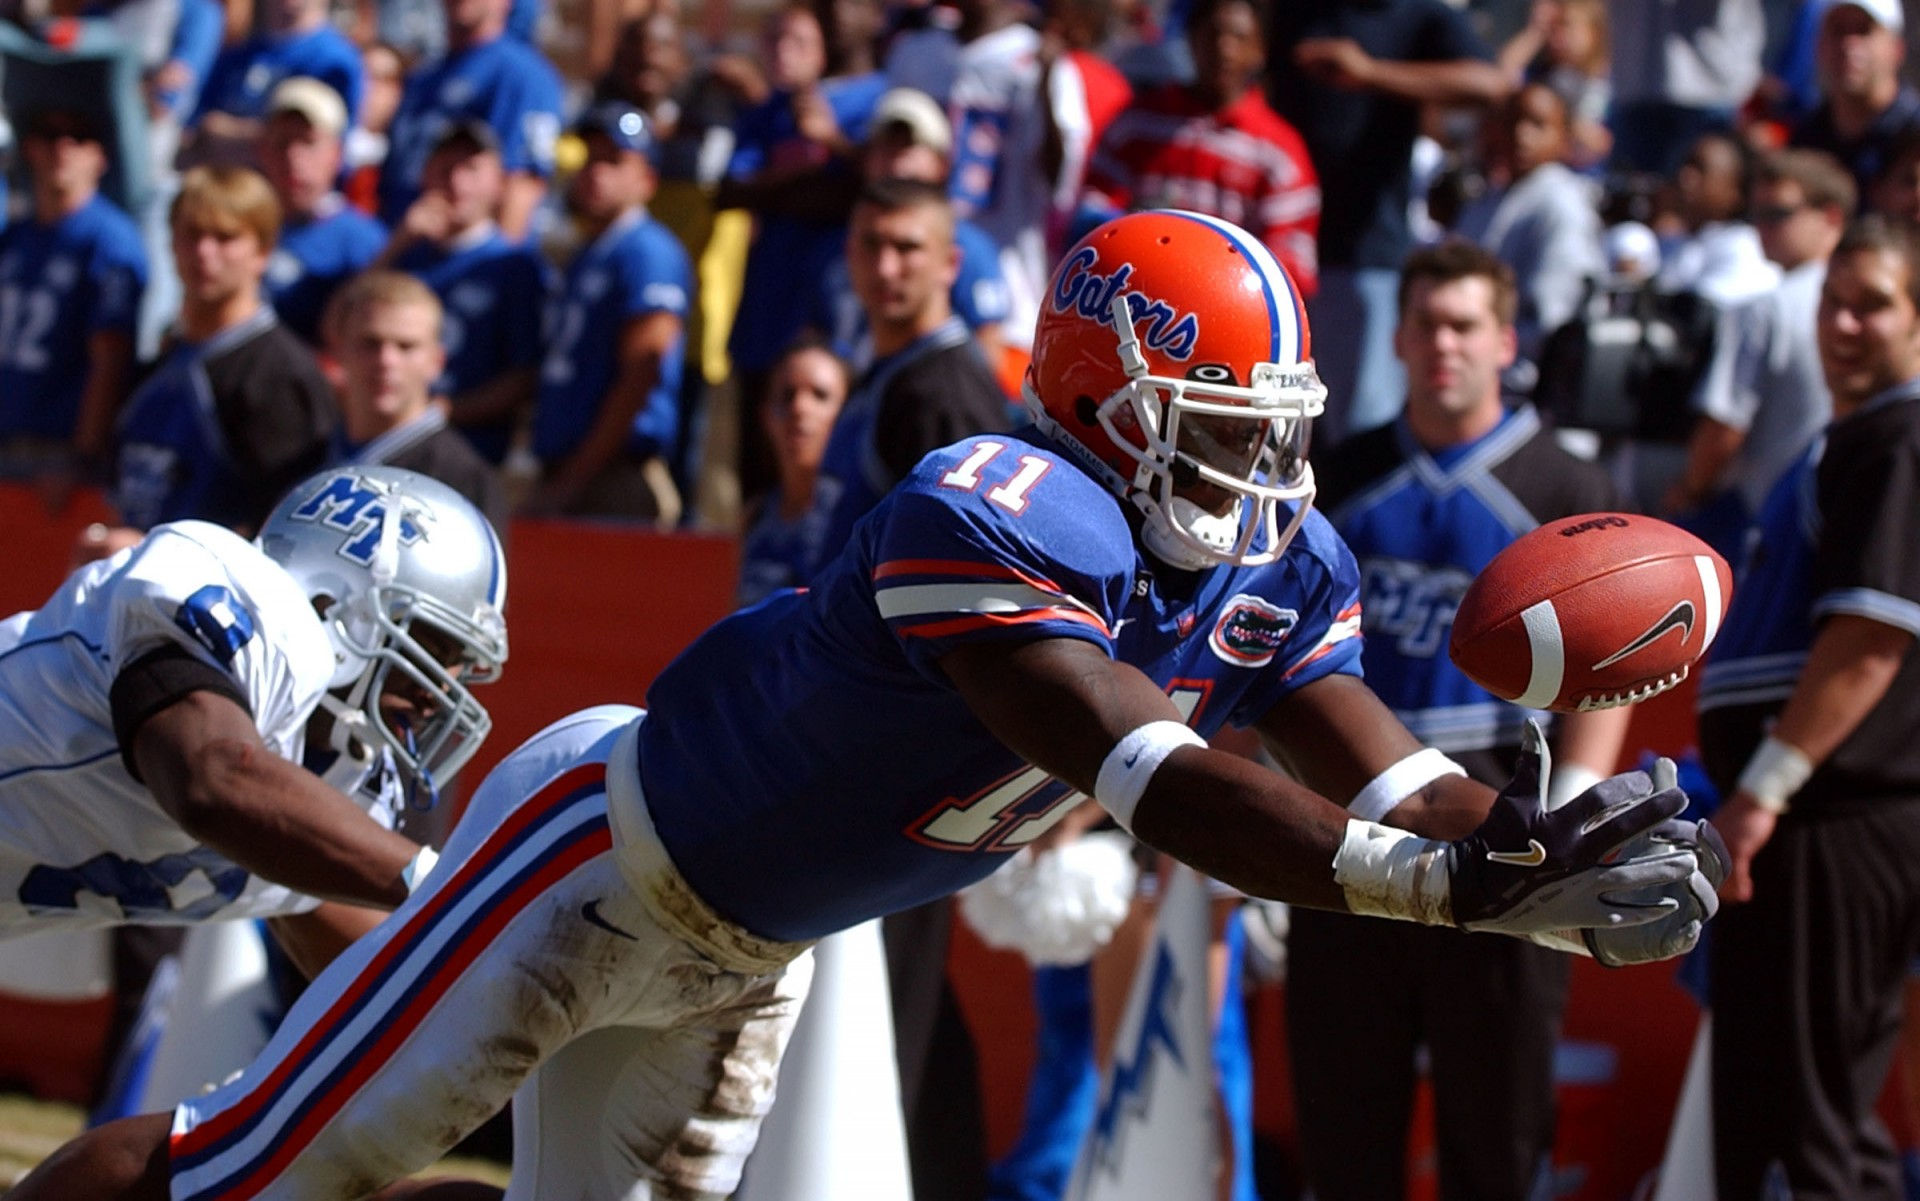 Gators battle Middle Tennessee in the Swamp